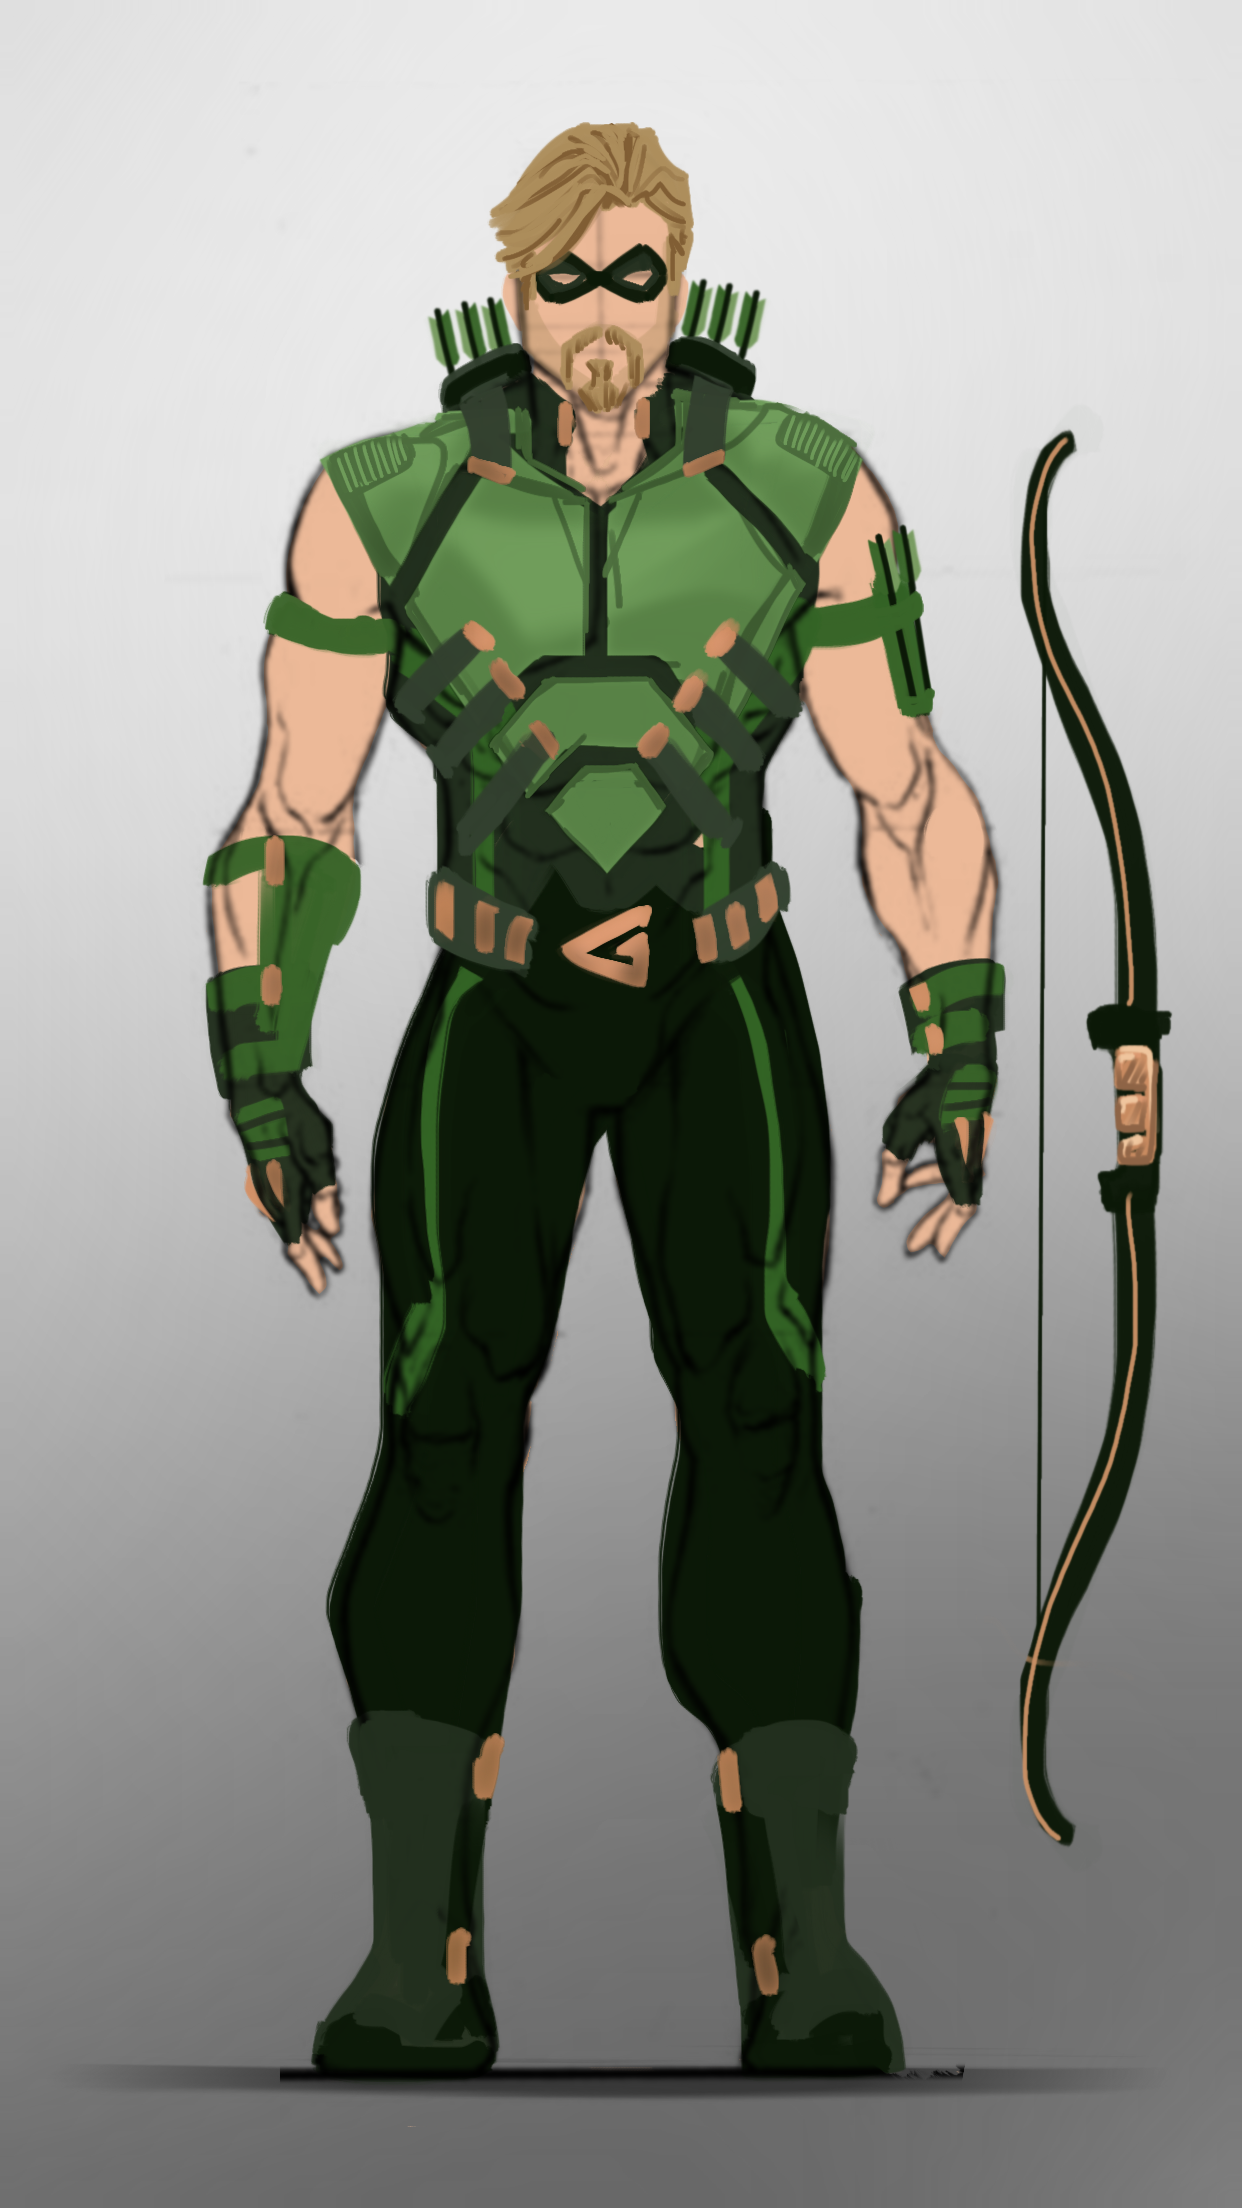 Green Arrow Emerald Archer I Wanted To Do Something A Bit More Custom Familiar Compared To The Last Green Arrow Comics Green Superhero Green Arrow Cosplay